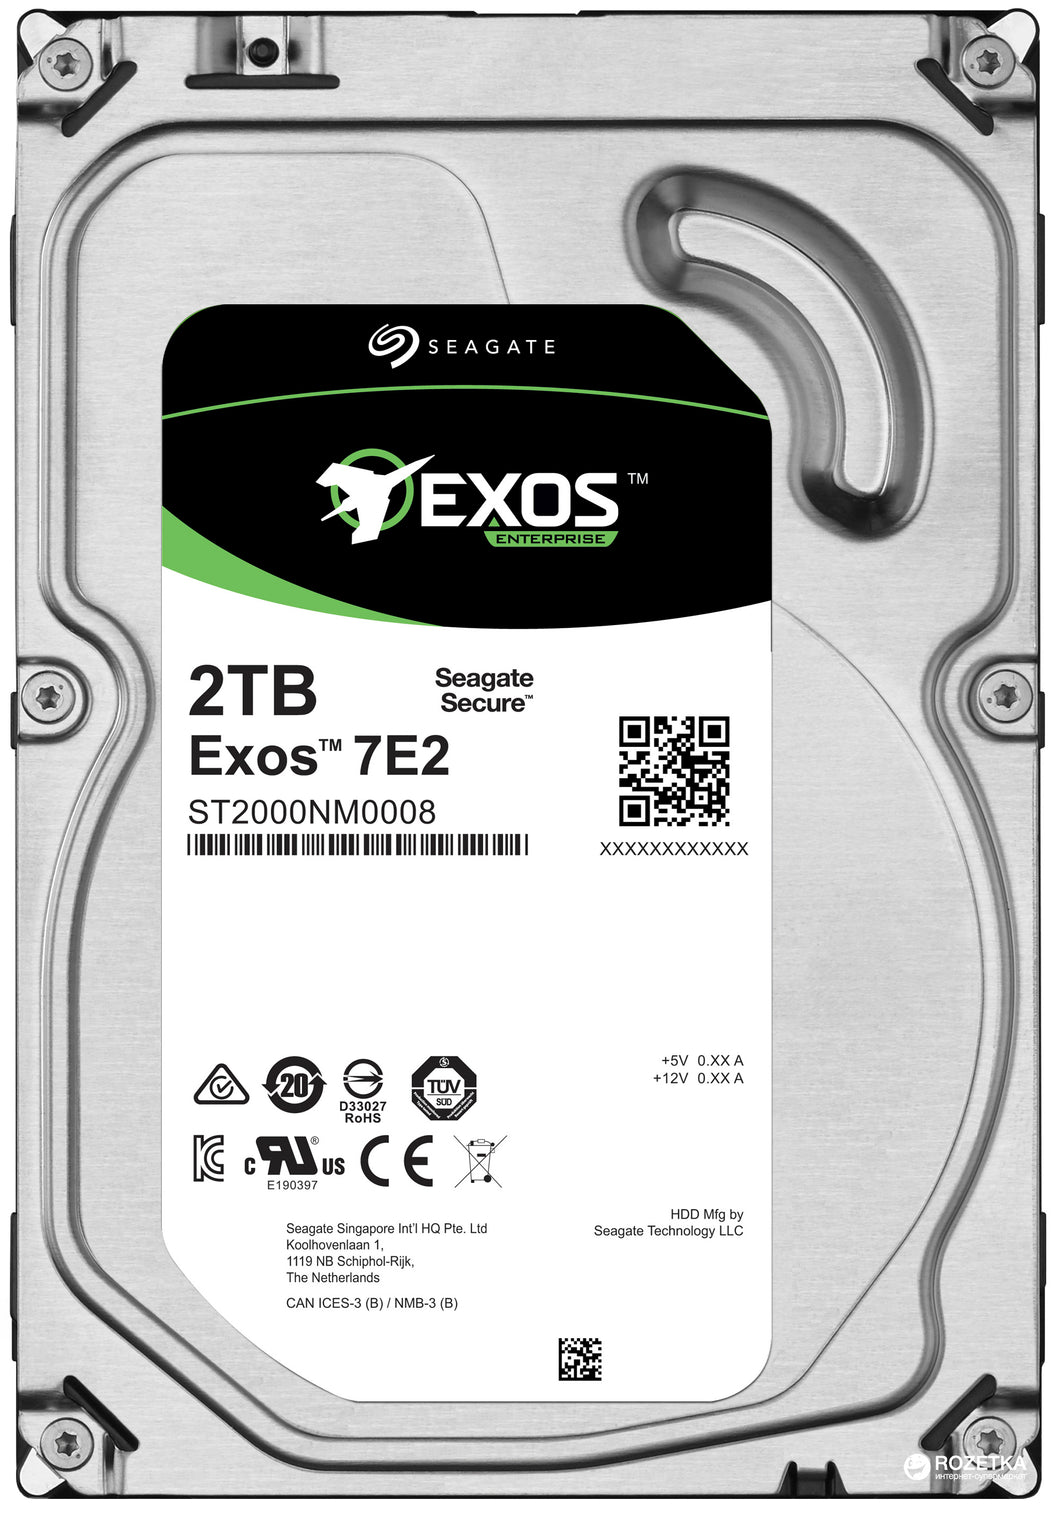 Seagate HDD ST2000NM0008 2TB 3.5 inch 7200RPM 128MB 6GB/s 512n Enterprise Bare